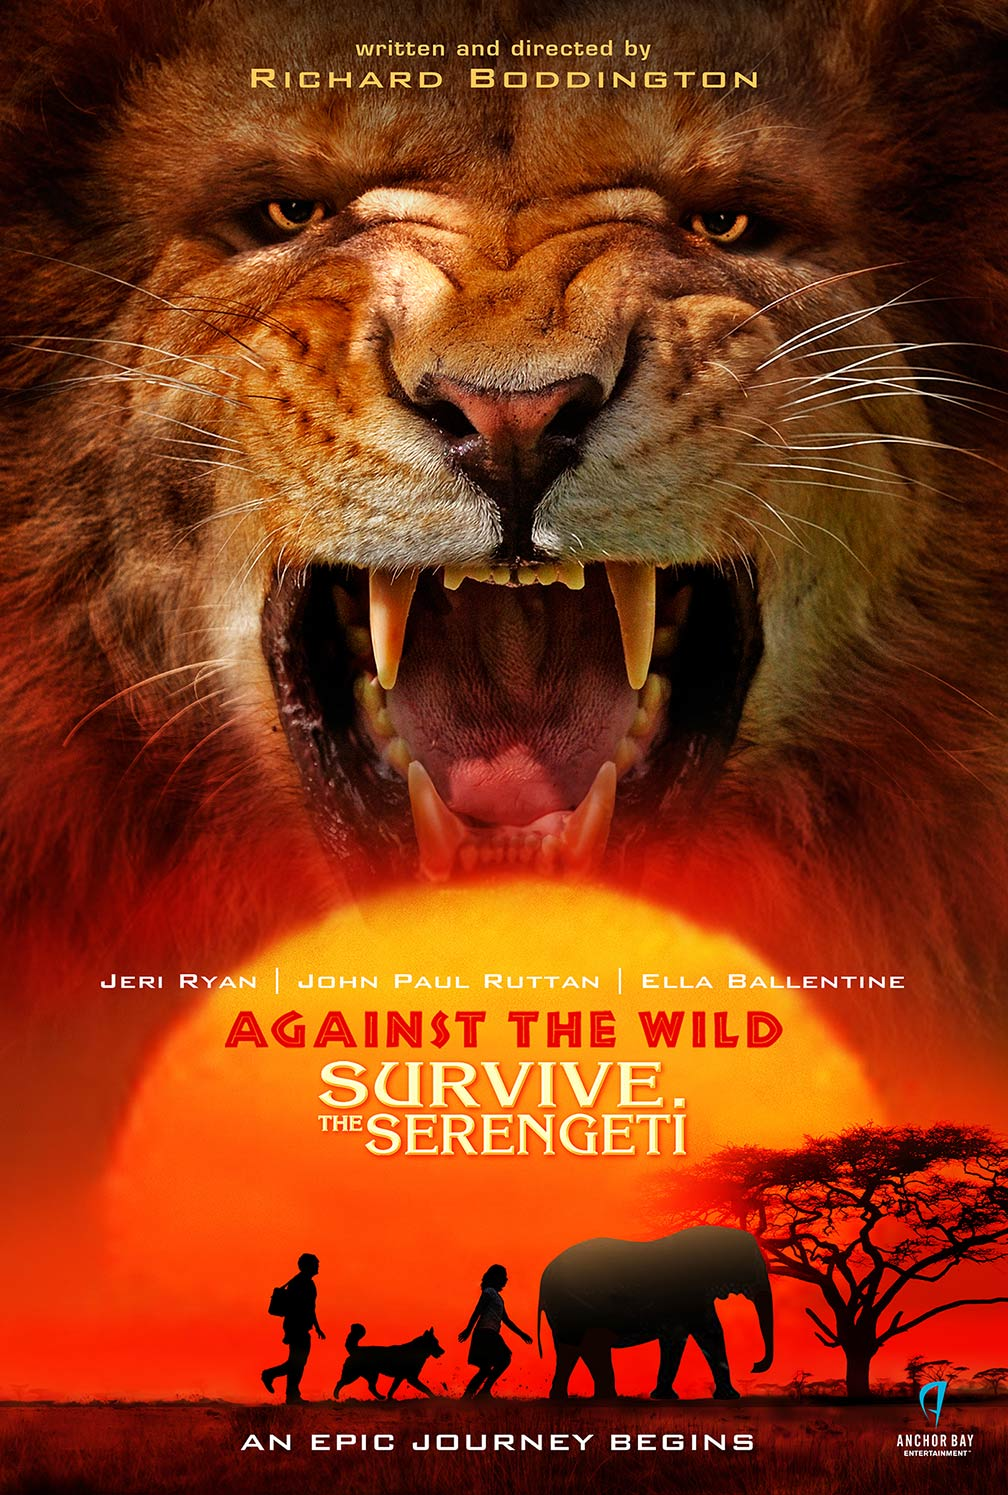 Against the Wild 2: Survive the Serengeti Poster #1